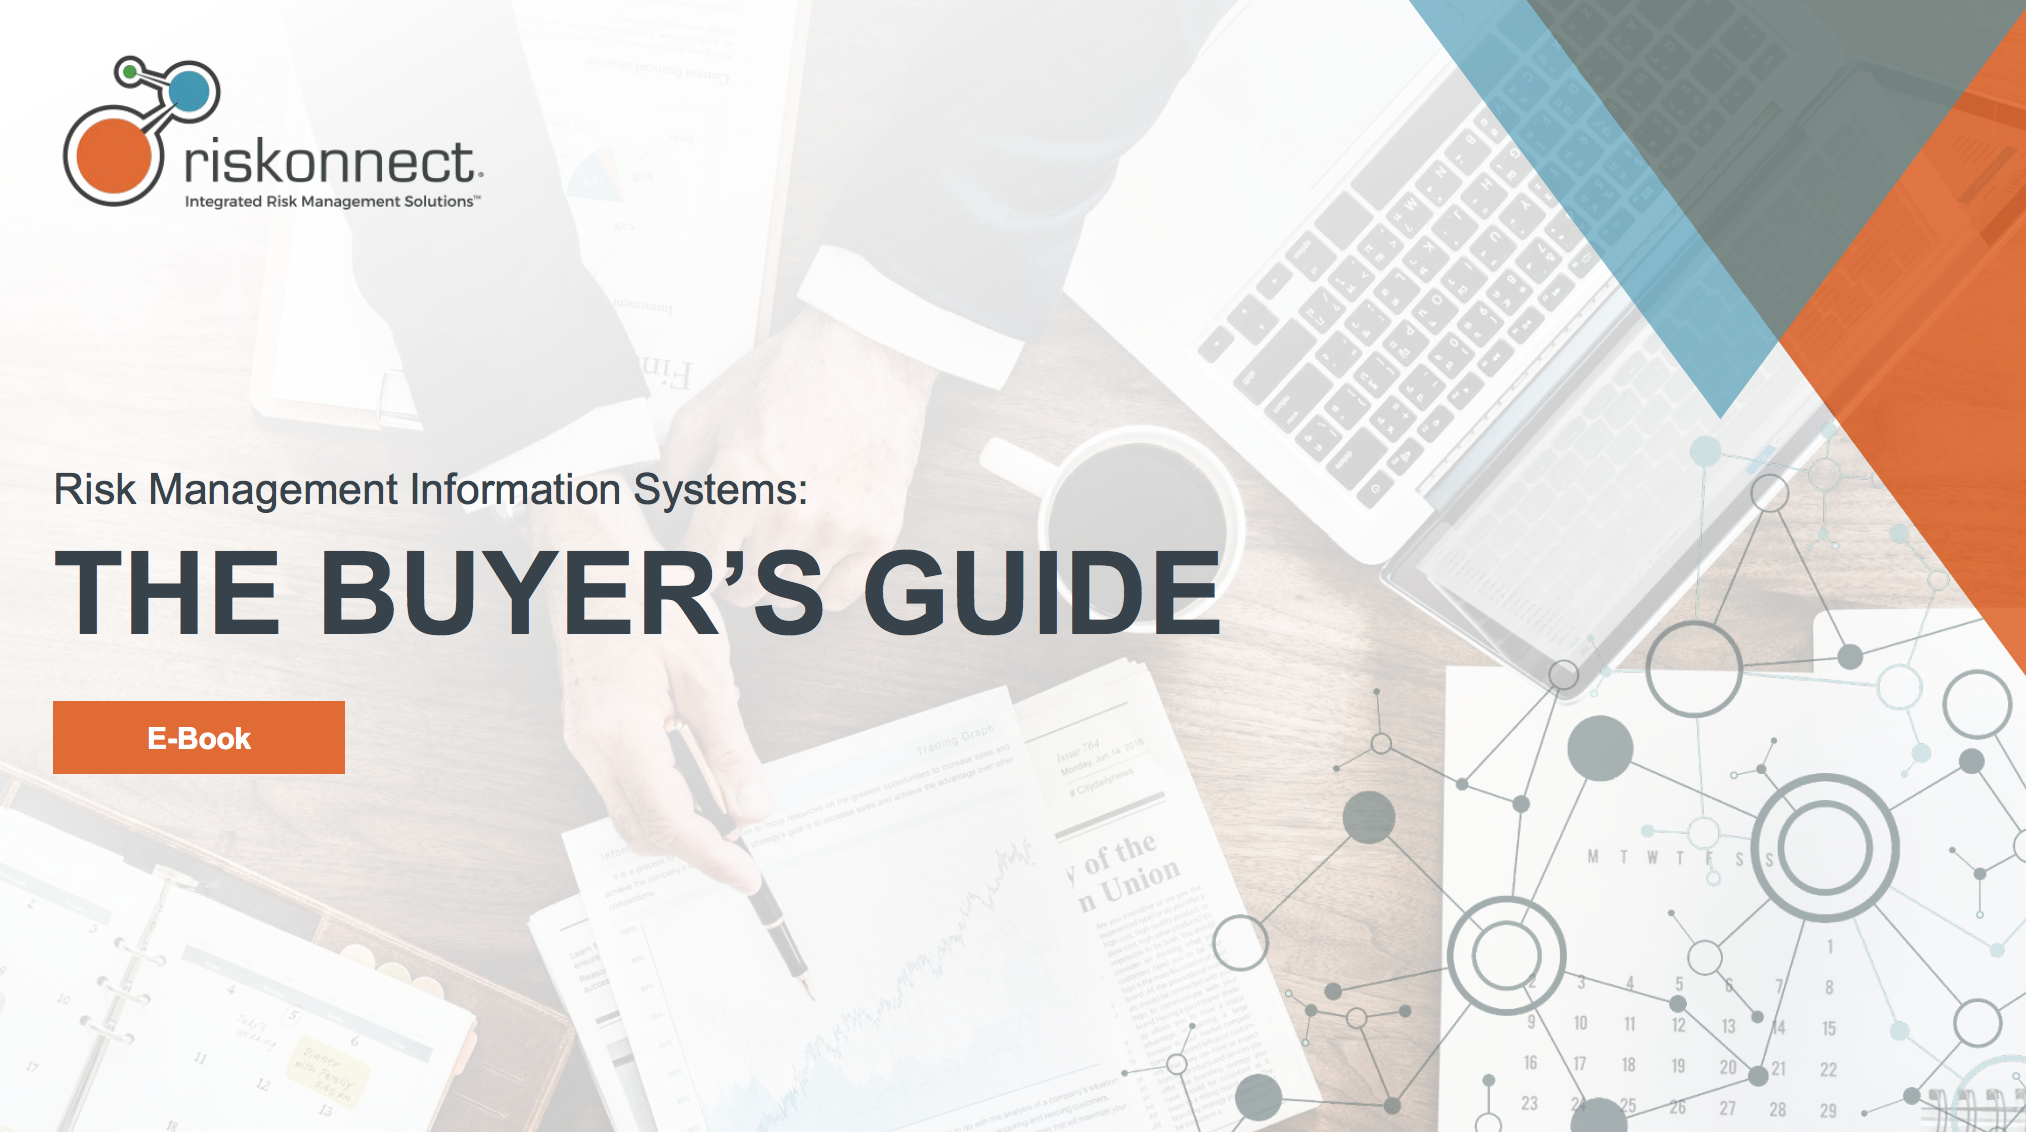 [E-Book] The Buyer's Guide to RMIS